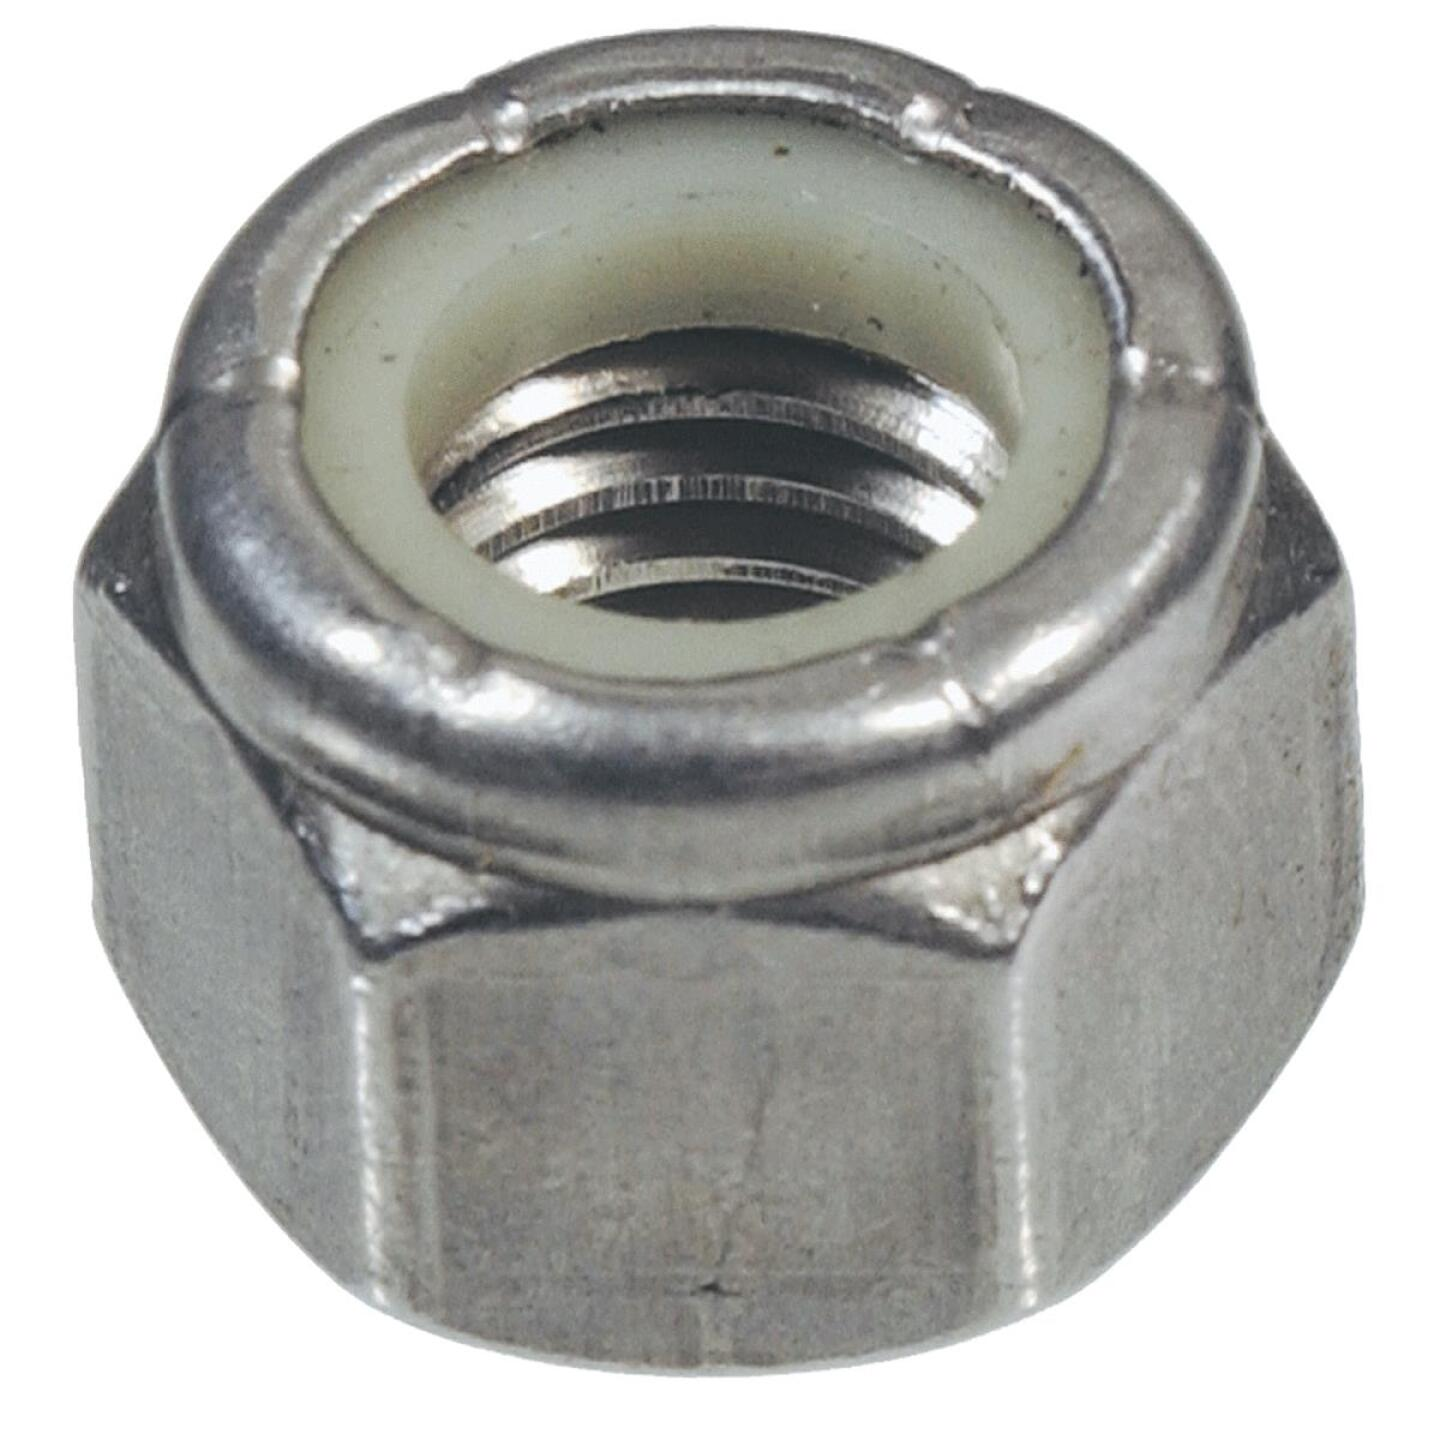 Hillman 5/16 In. 18 tpi Stainless Steel Course Thread Nylon Insert Lock Nut (50 Ct.) Image 1